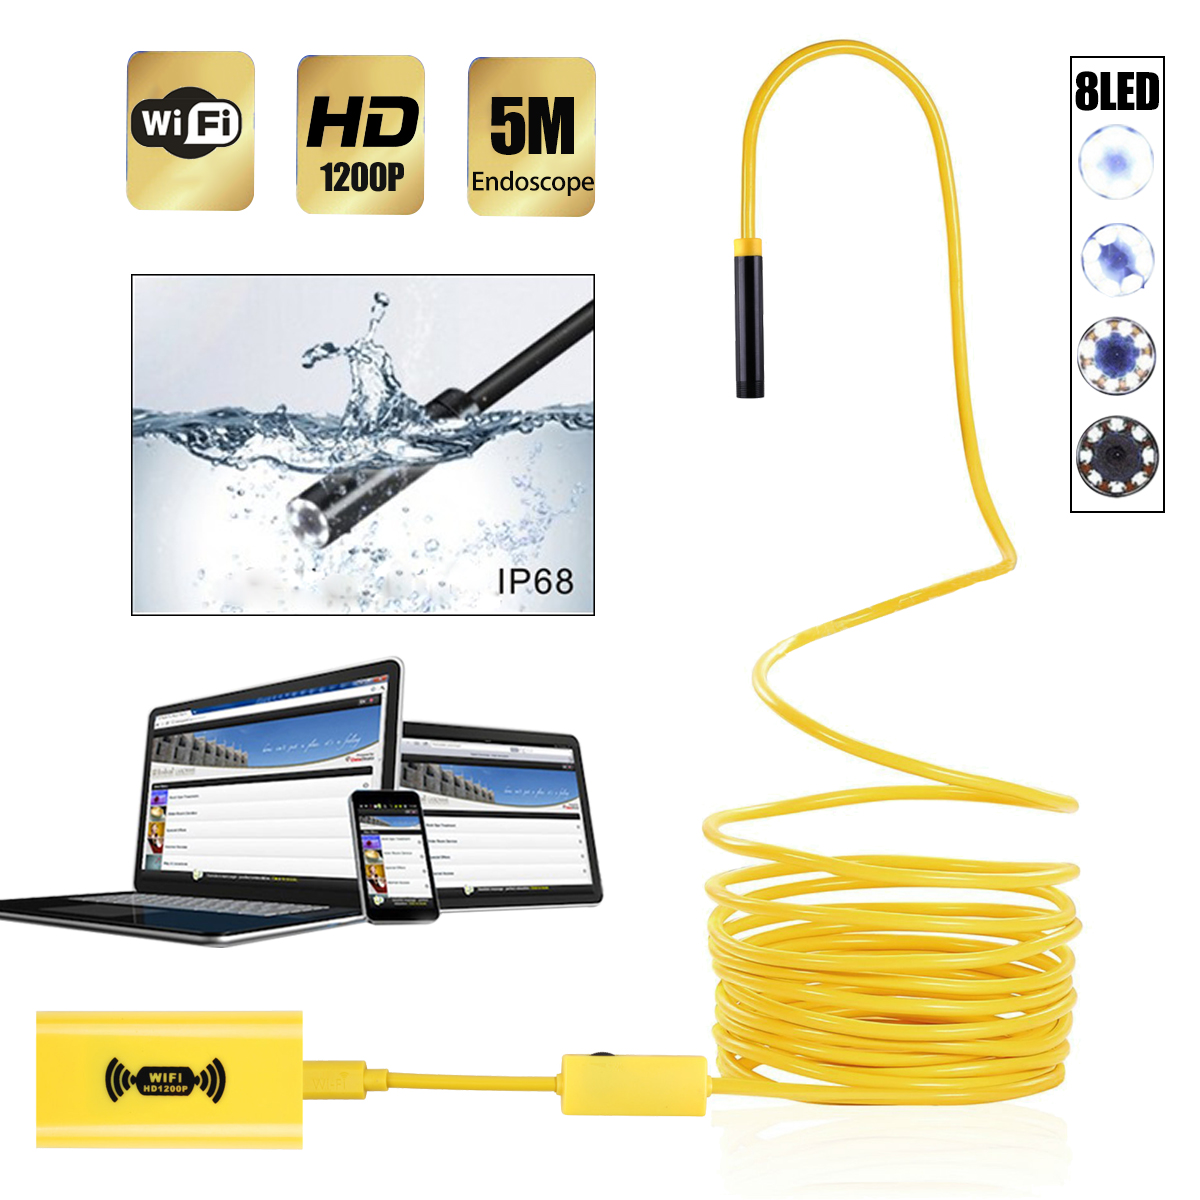 5M Wireless Endoscope 8 LED WiFi Borescope Inspection Camera 2.0 Megapixels 1200P HD Waterproof Snake Camera for Android & iOS